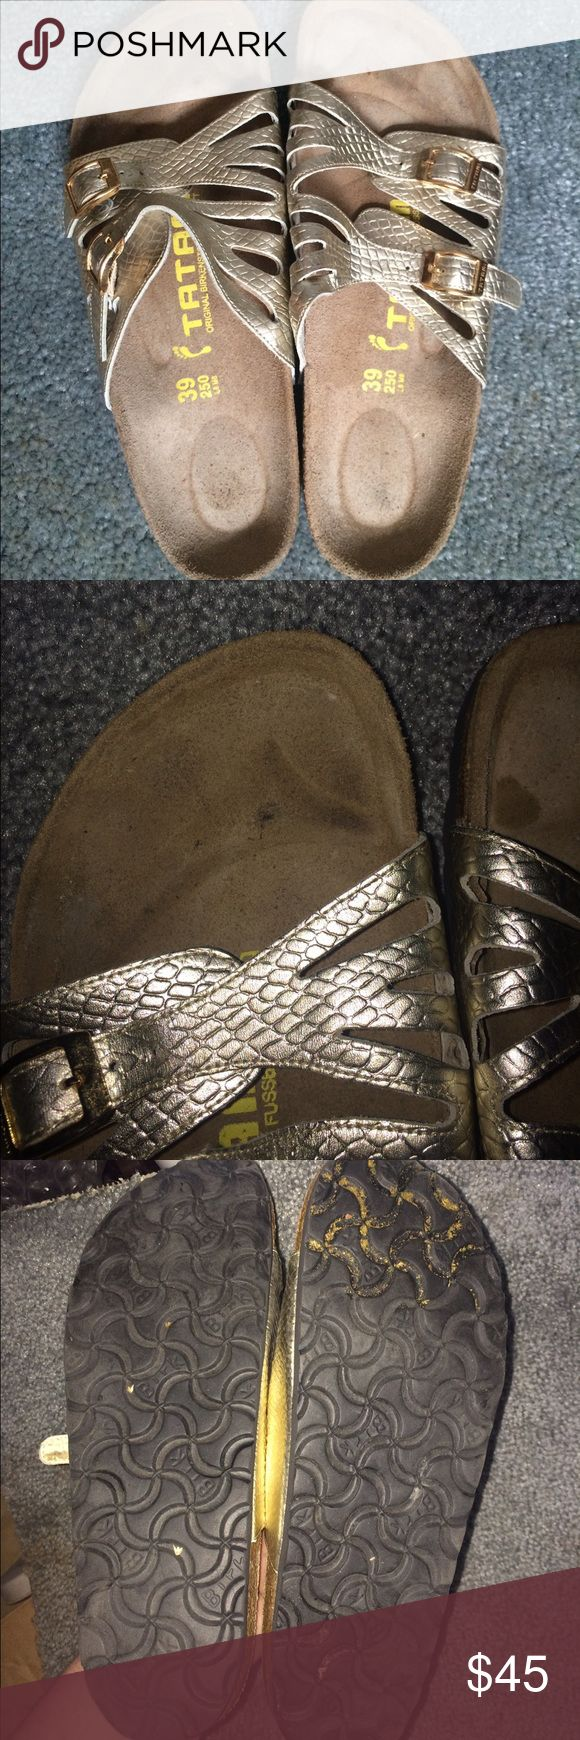 Birkenstocks tatami size 39 Gently used. Some surface stains could probably be removed (haven't tried) comfortable, still tons of life left in them! They are not even broken in yet! Birkenstock Shoes Sandals